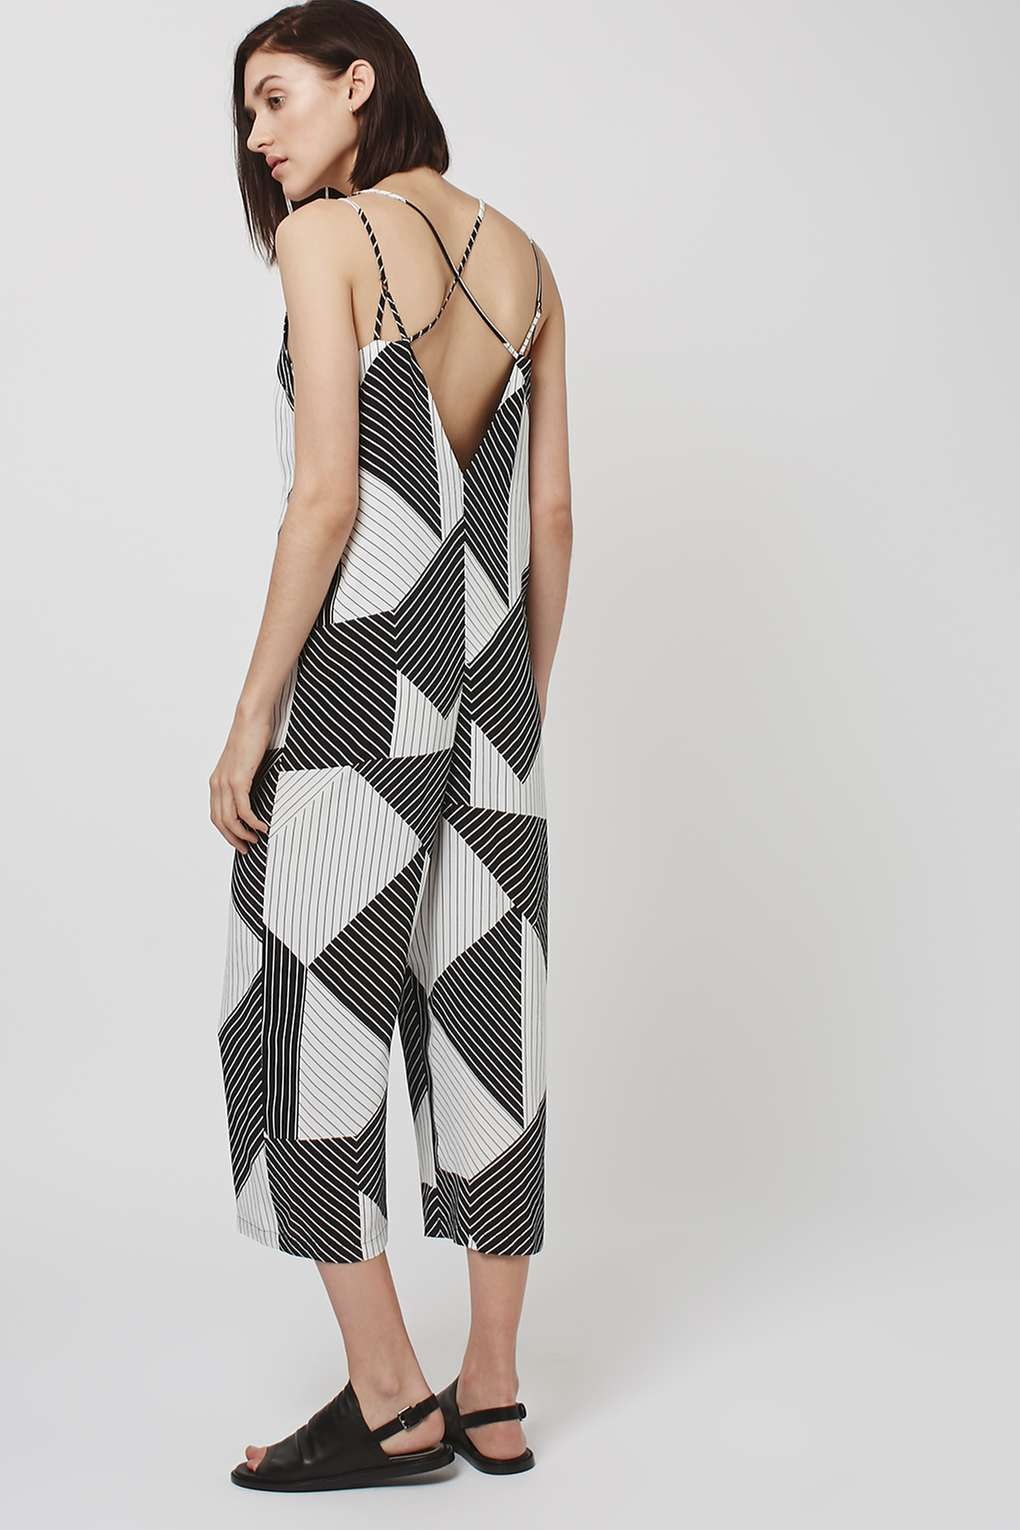 Striped Slouch Jumpsuit - New In Fashion - New In | Topshop ...